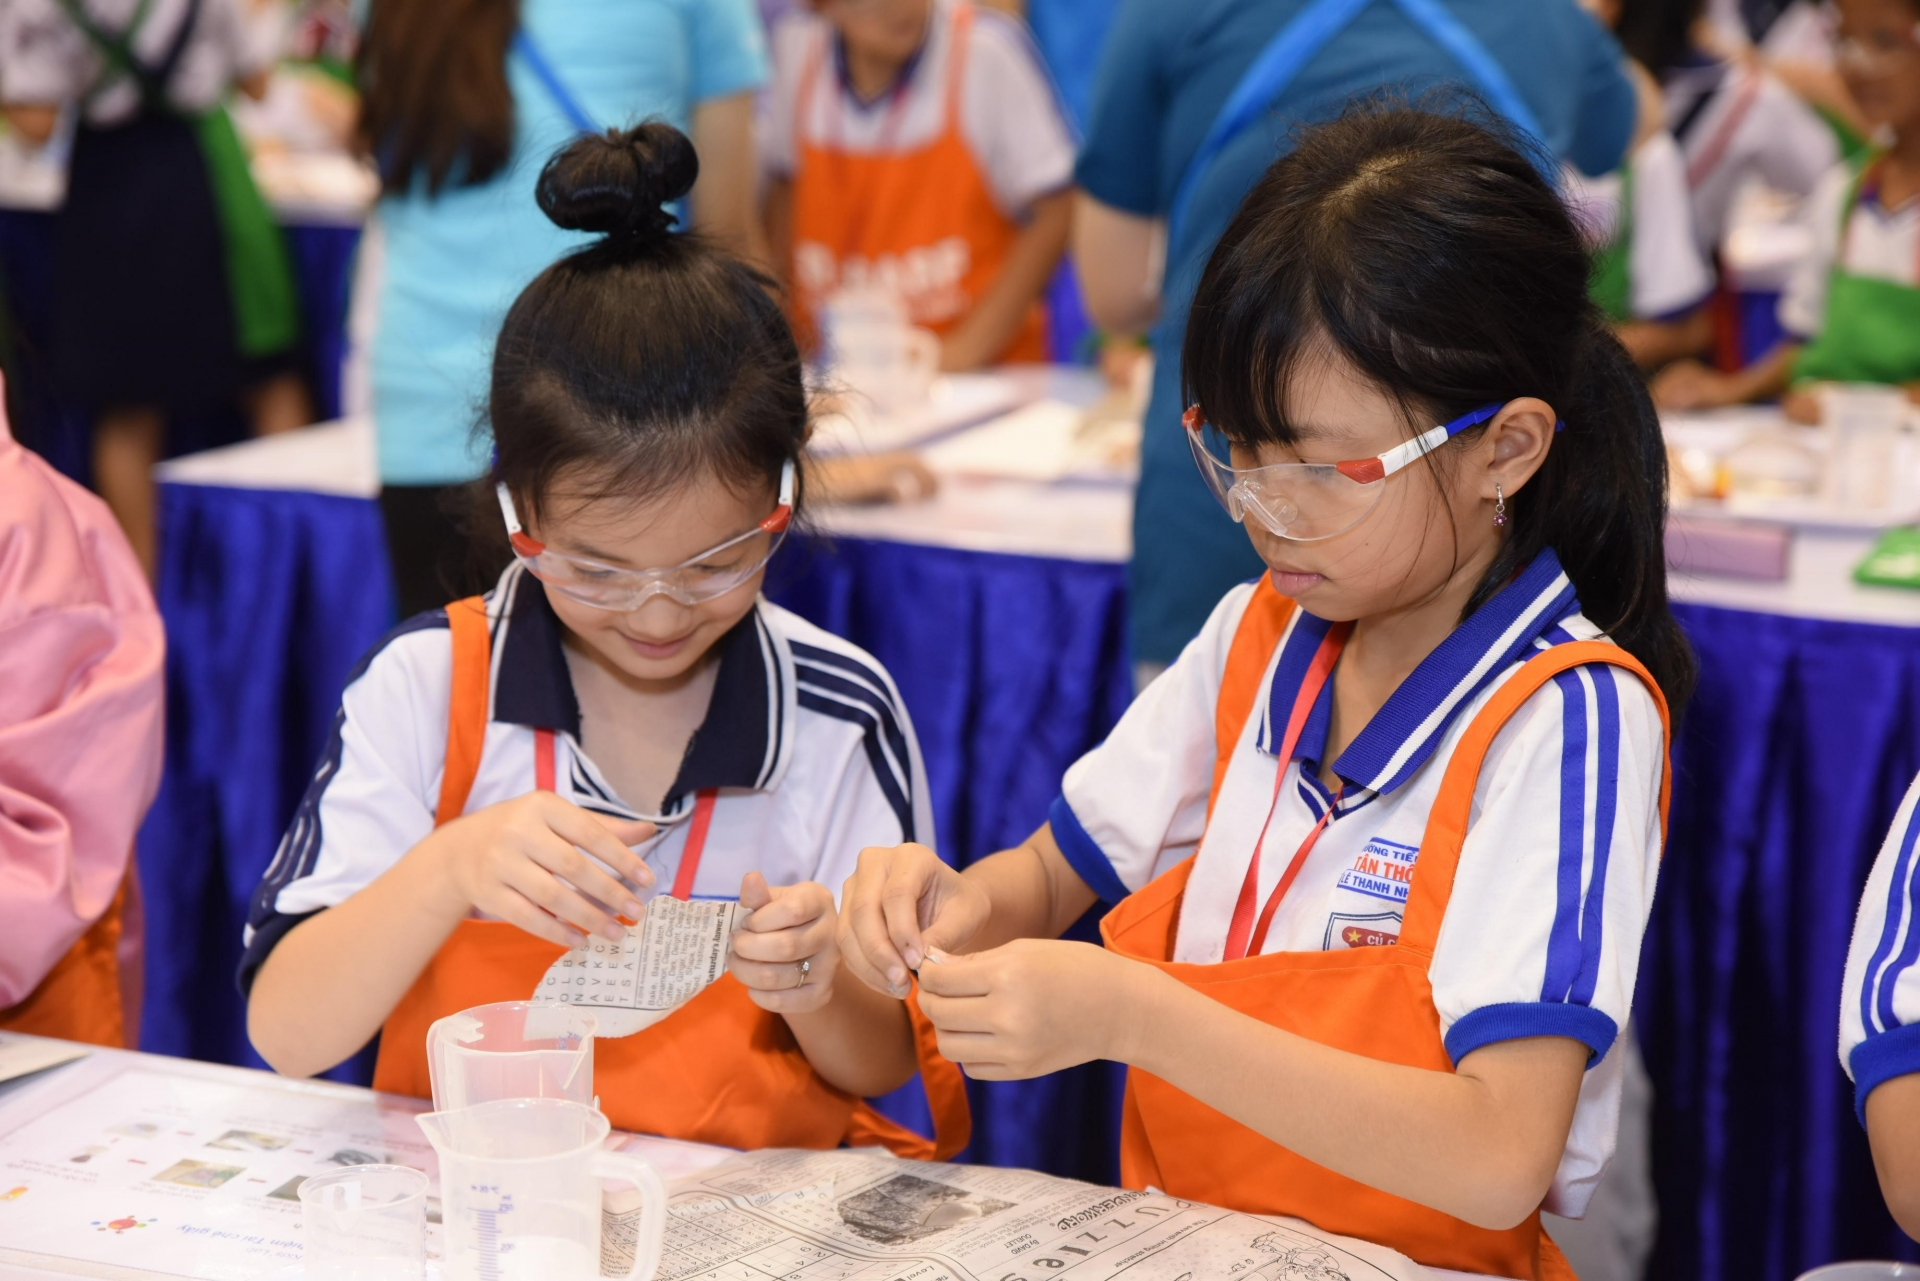 650 children learn about recycling at BASF Kids' Lab